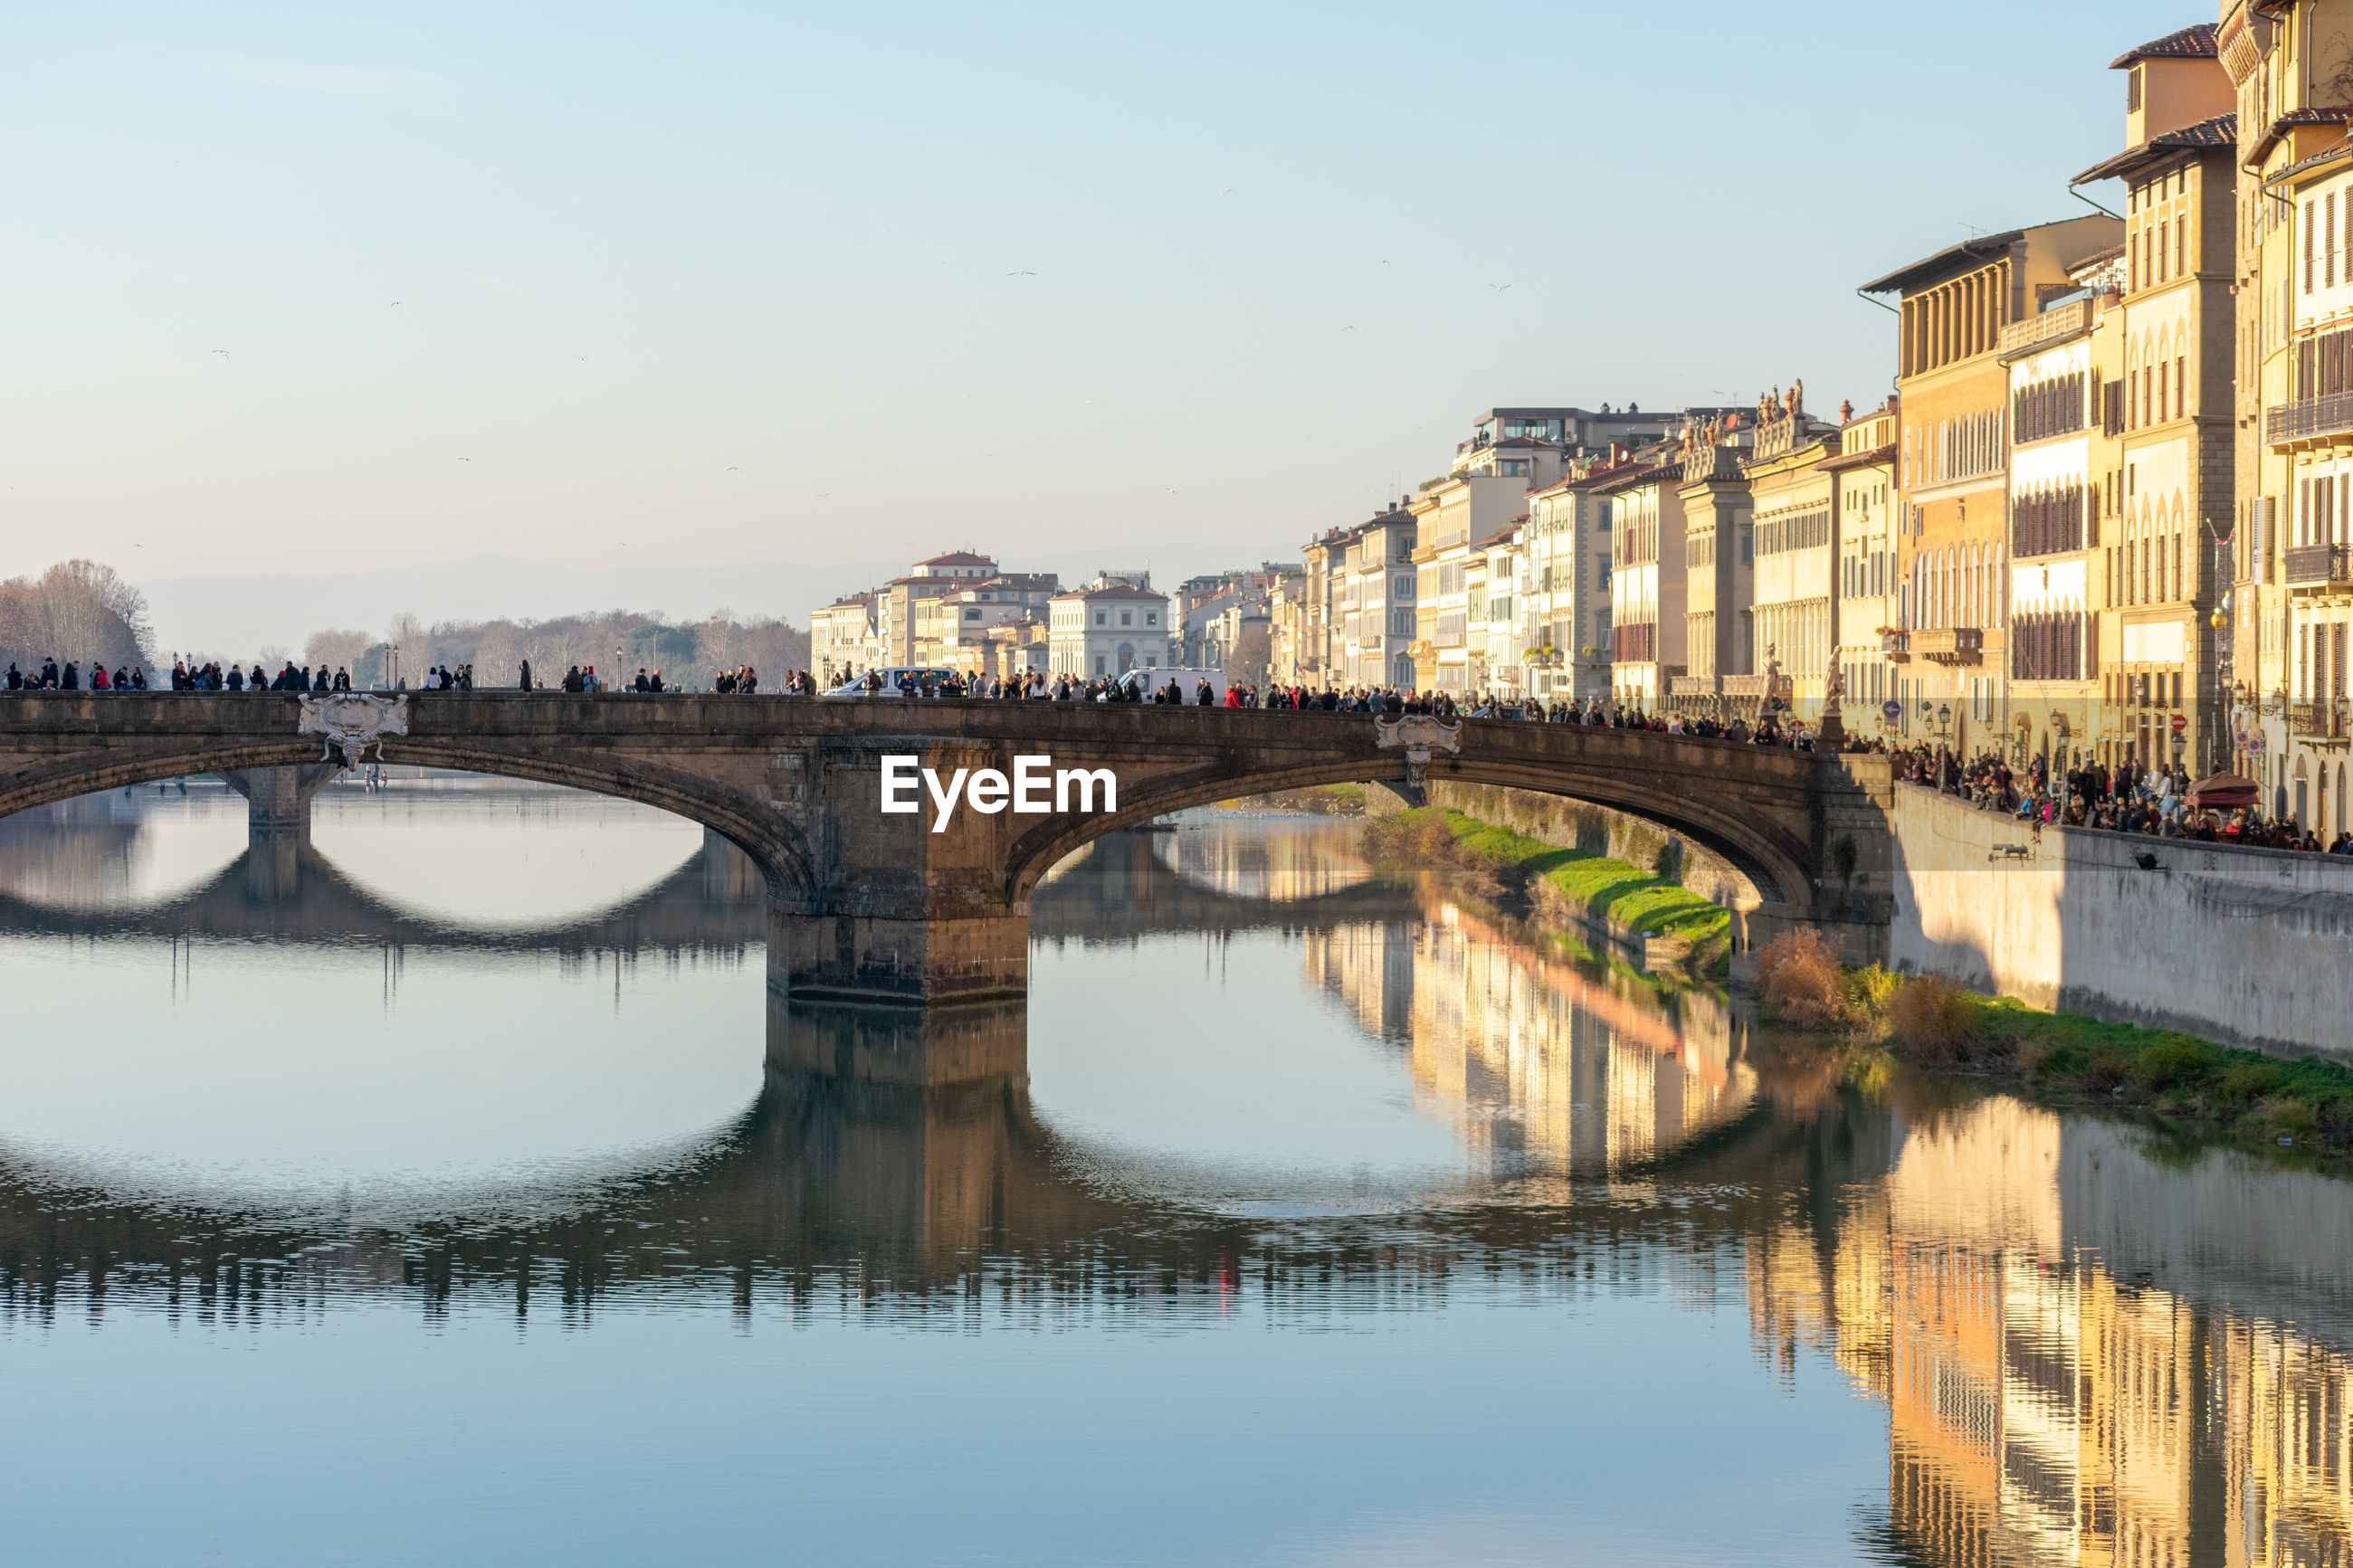 BRIDGE OVER RIVER WITH BUILDINGS IN CITY